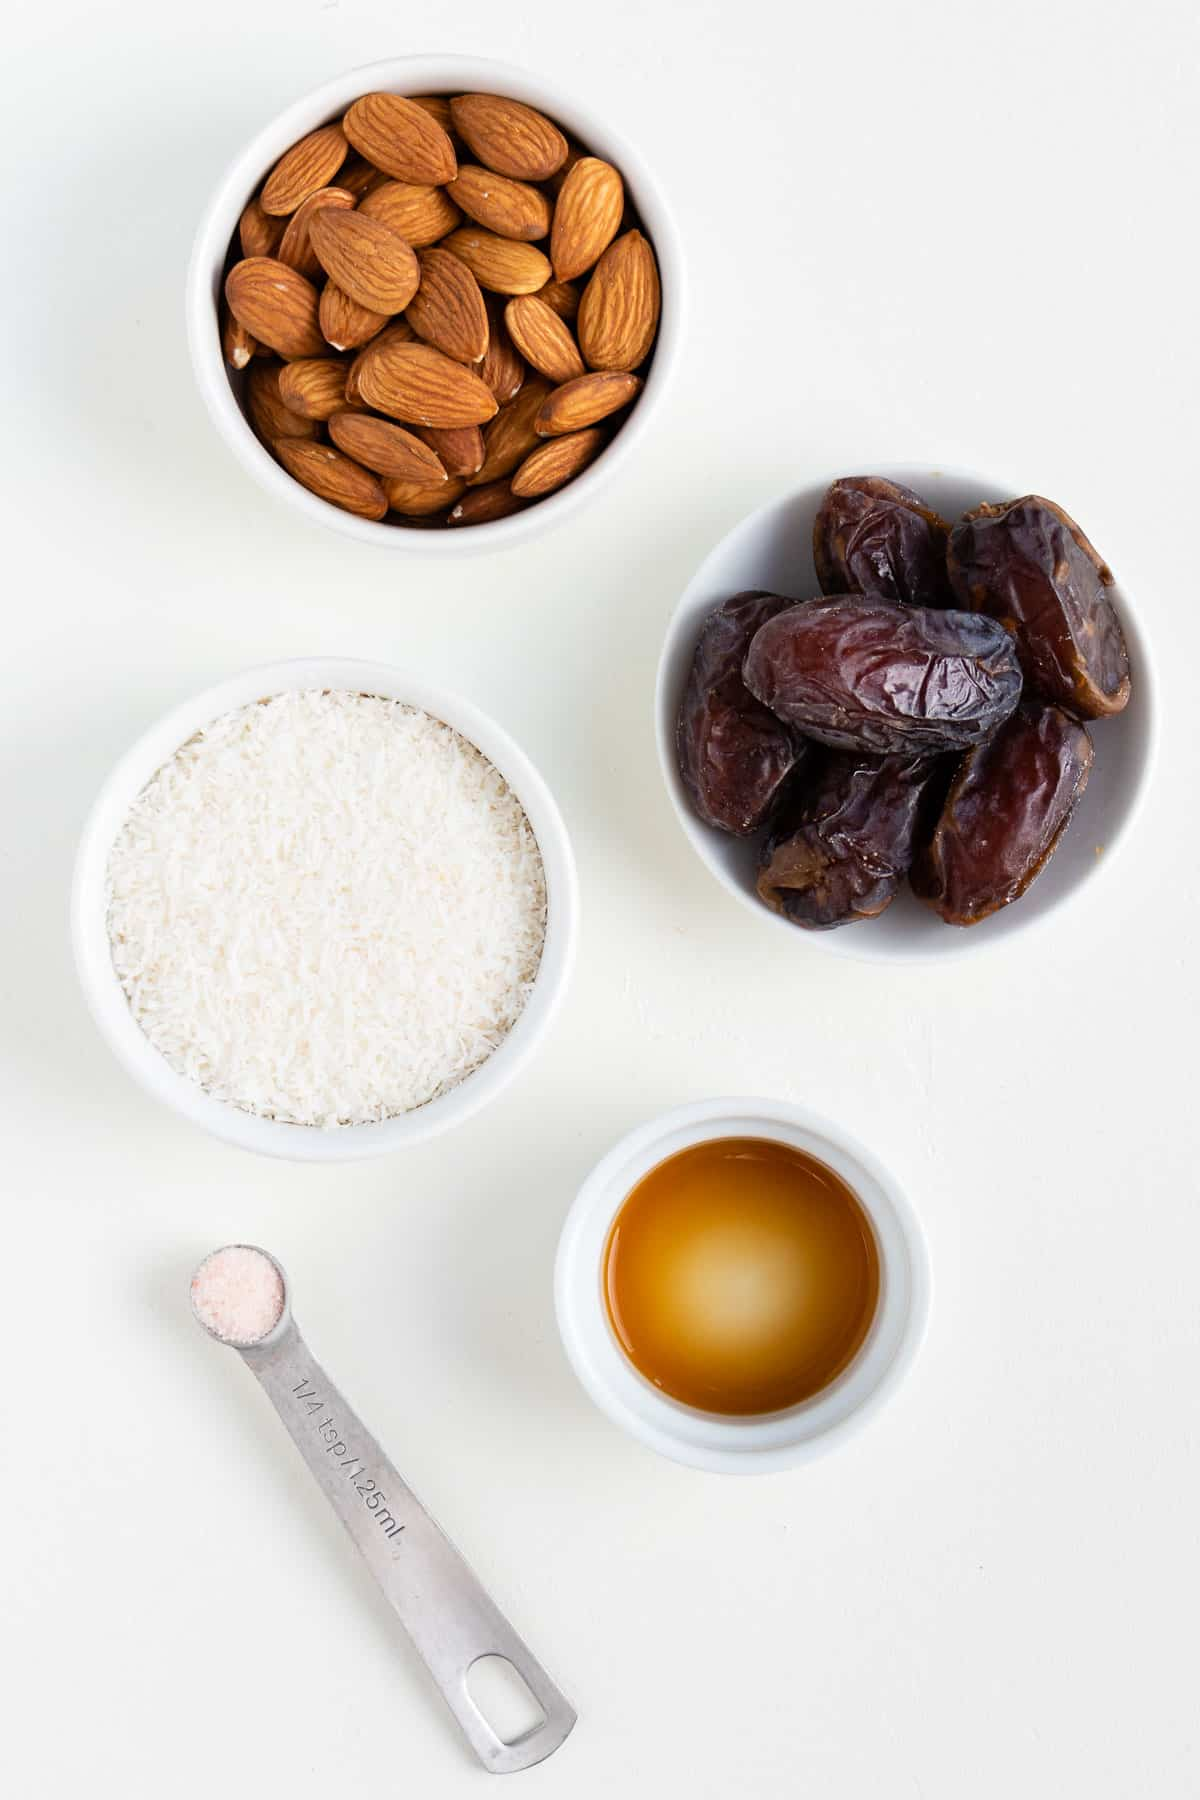 small white bowls of nuts, coconut, dates, and vanilla extract on a white surface